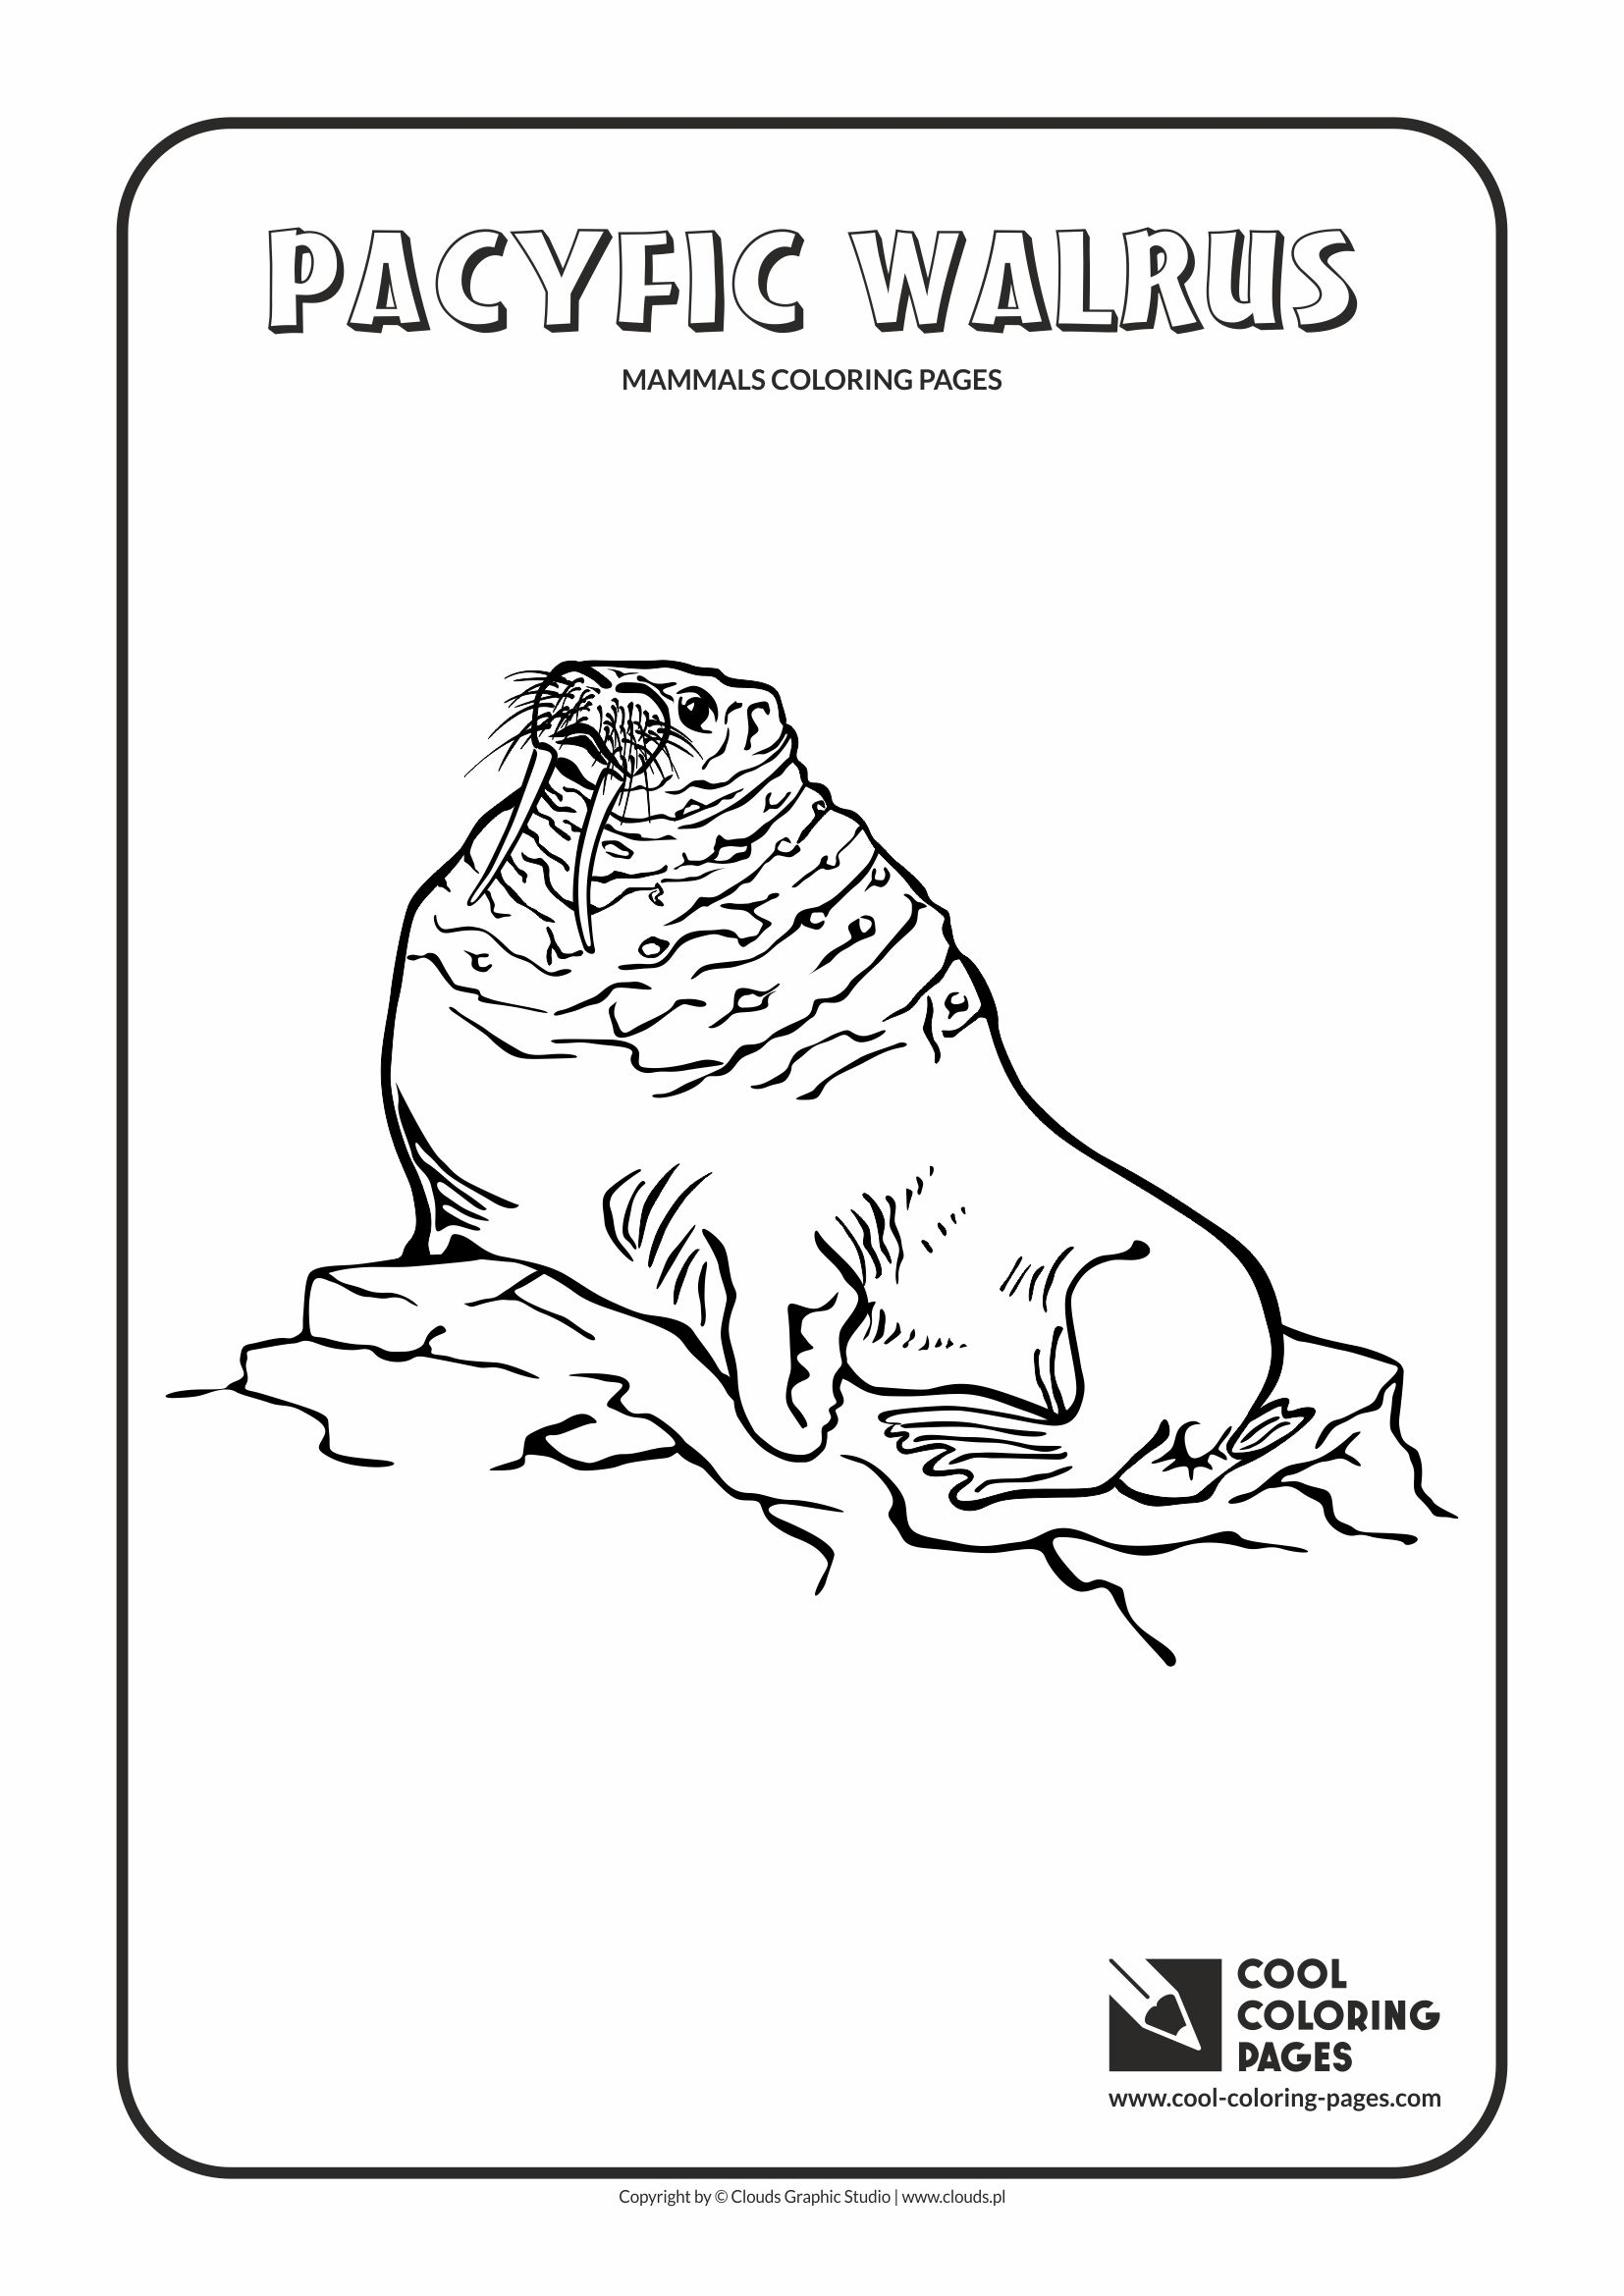 Cool Coloring Pages - Animals / Pacific walrus / Coloring page with pacific walrus